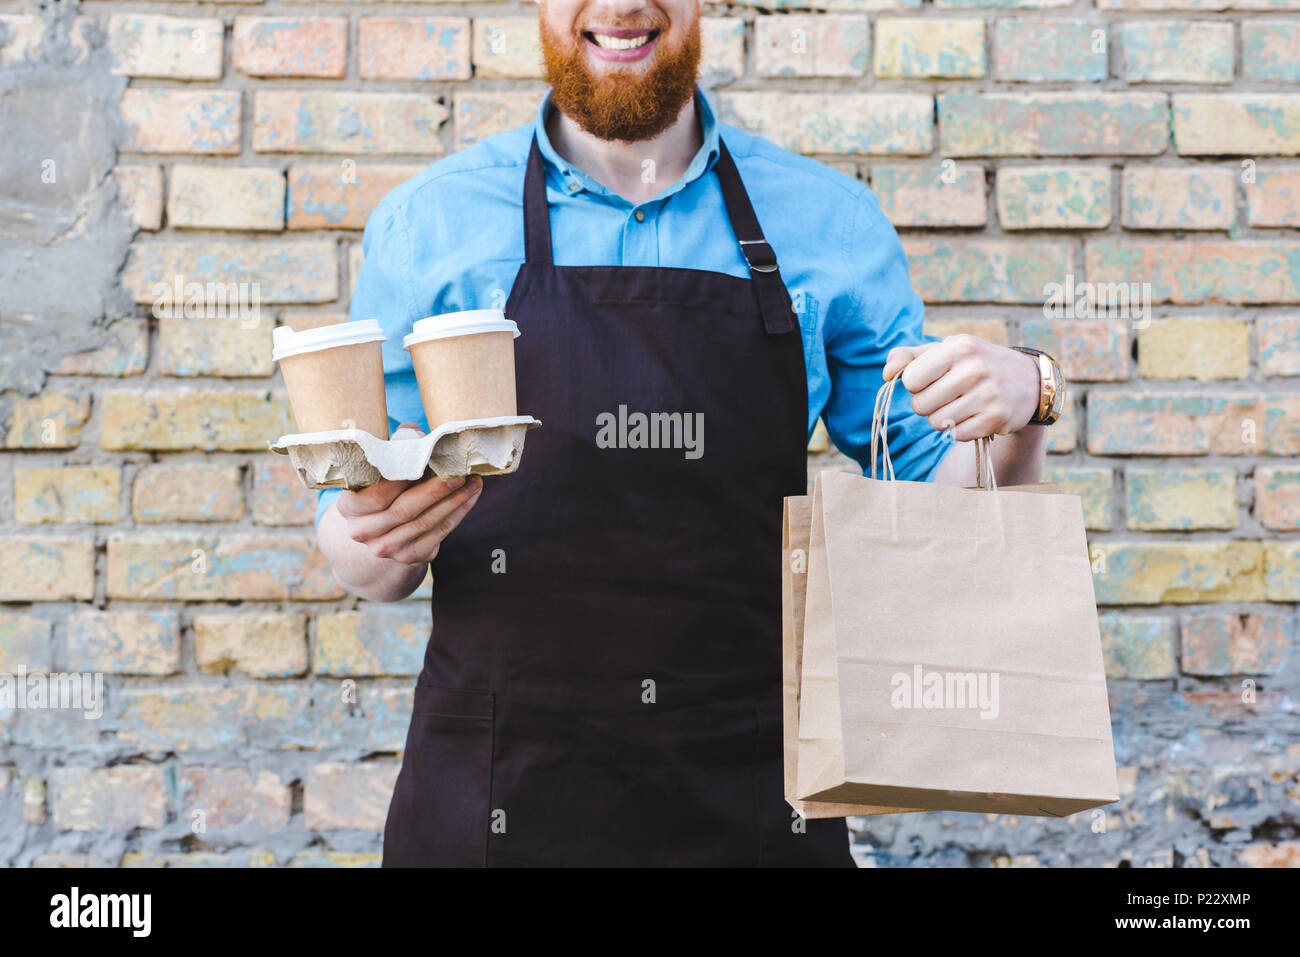 cropped shot of smiling male barista in apron holding paper bags and disposable cups with coffee - Stock Image